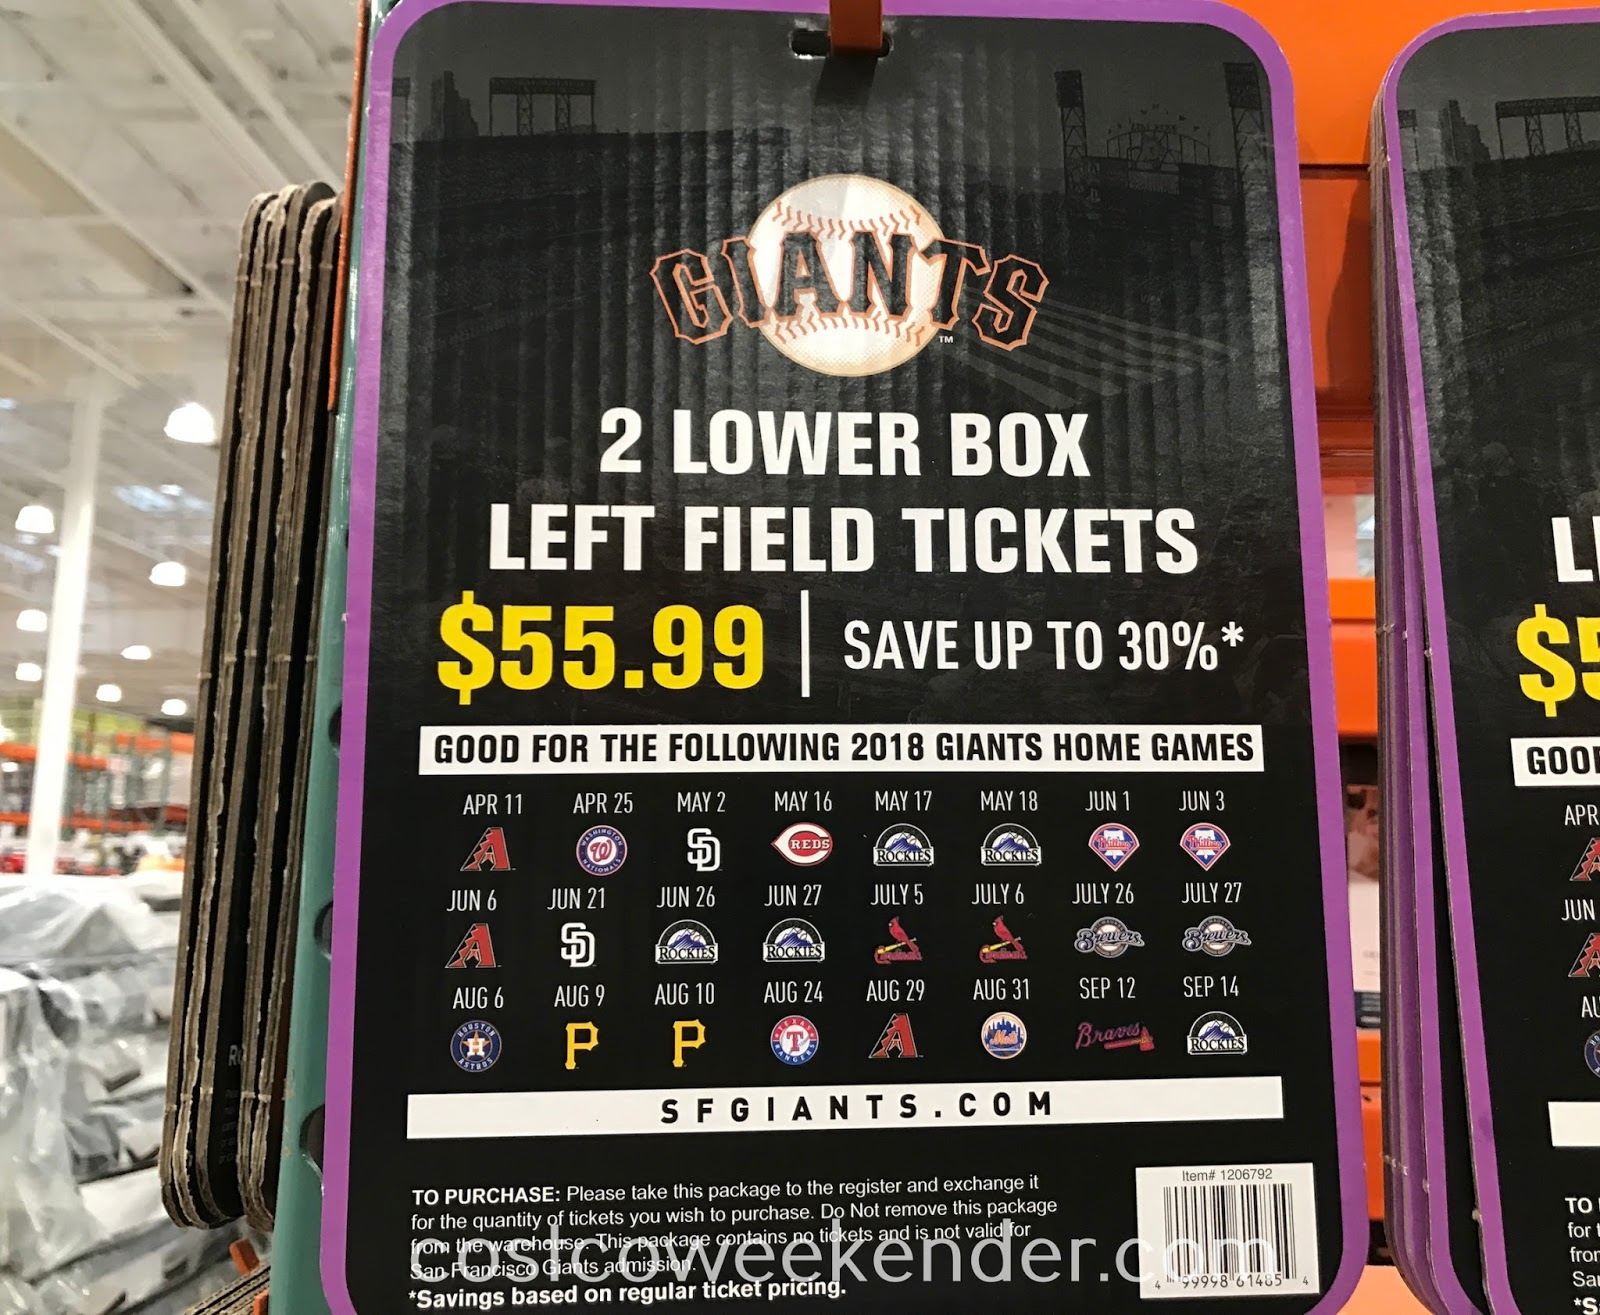 San Francisco Giants 2 Lower Box Left Field Tickets 2018: great for a day at the ballpark